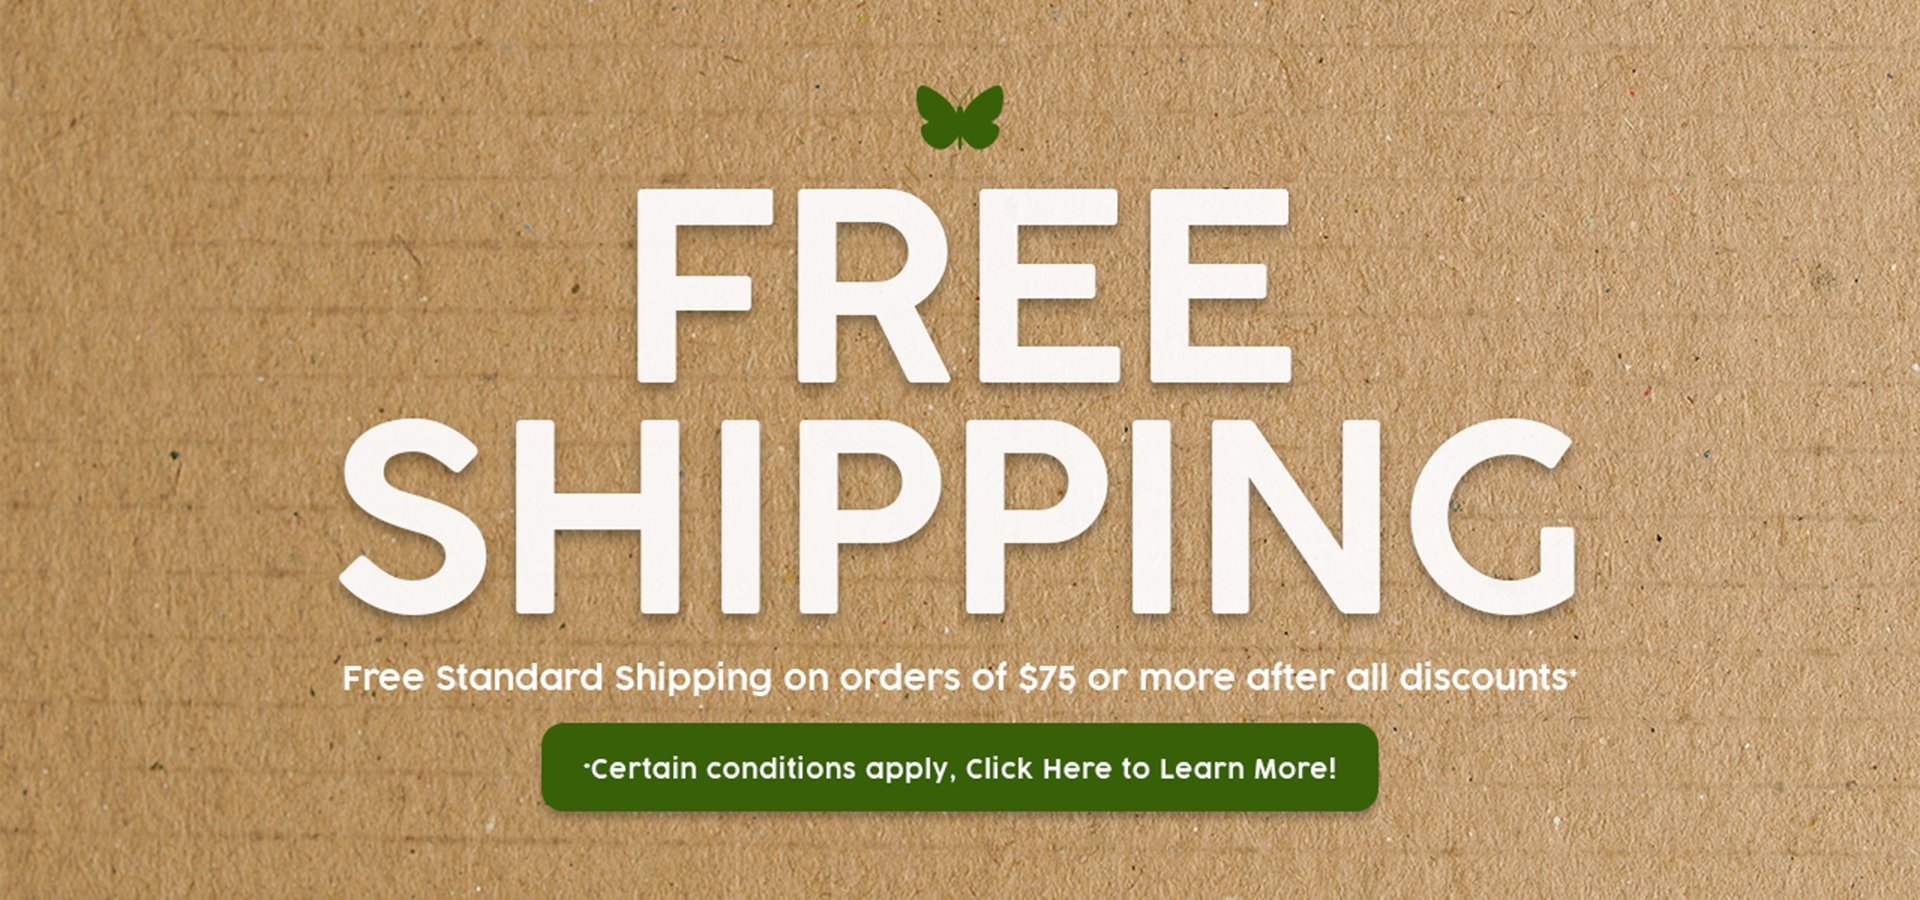 Free Shipping from Natural Findings on orders of $75 or more